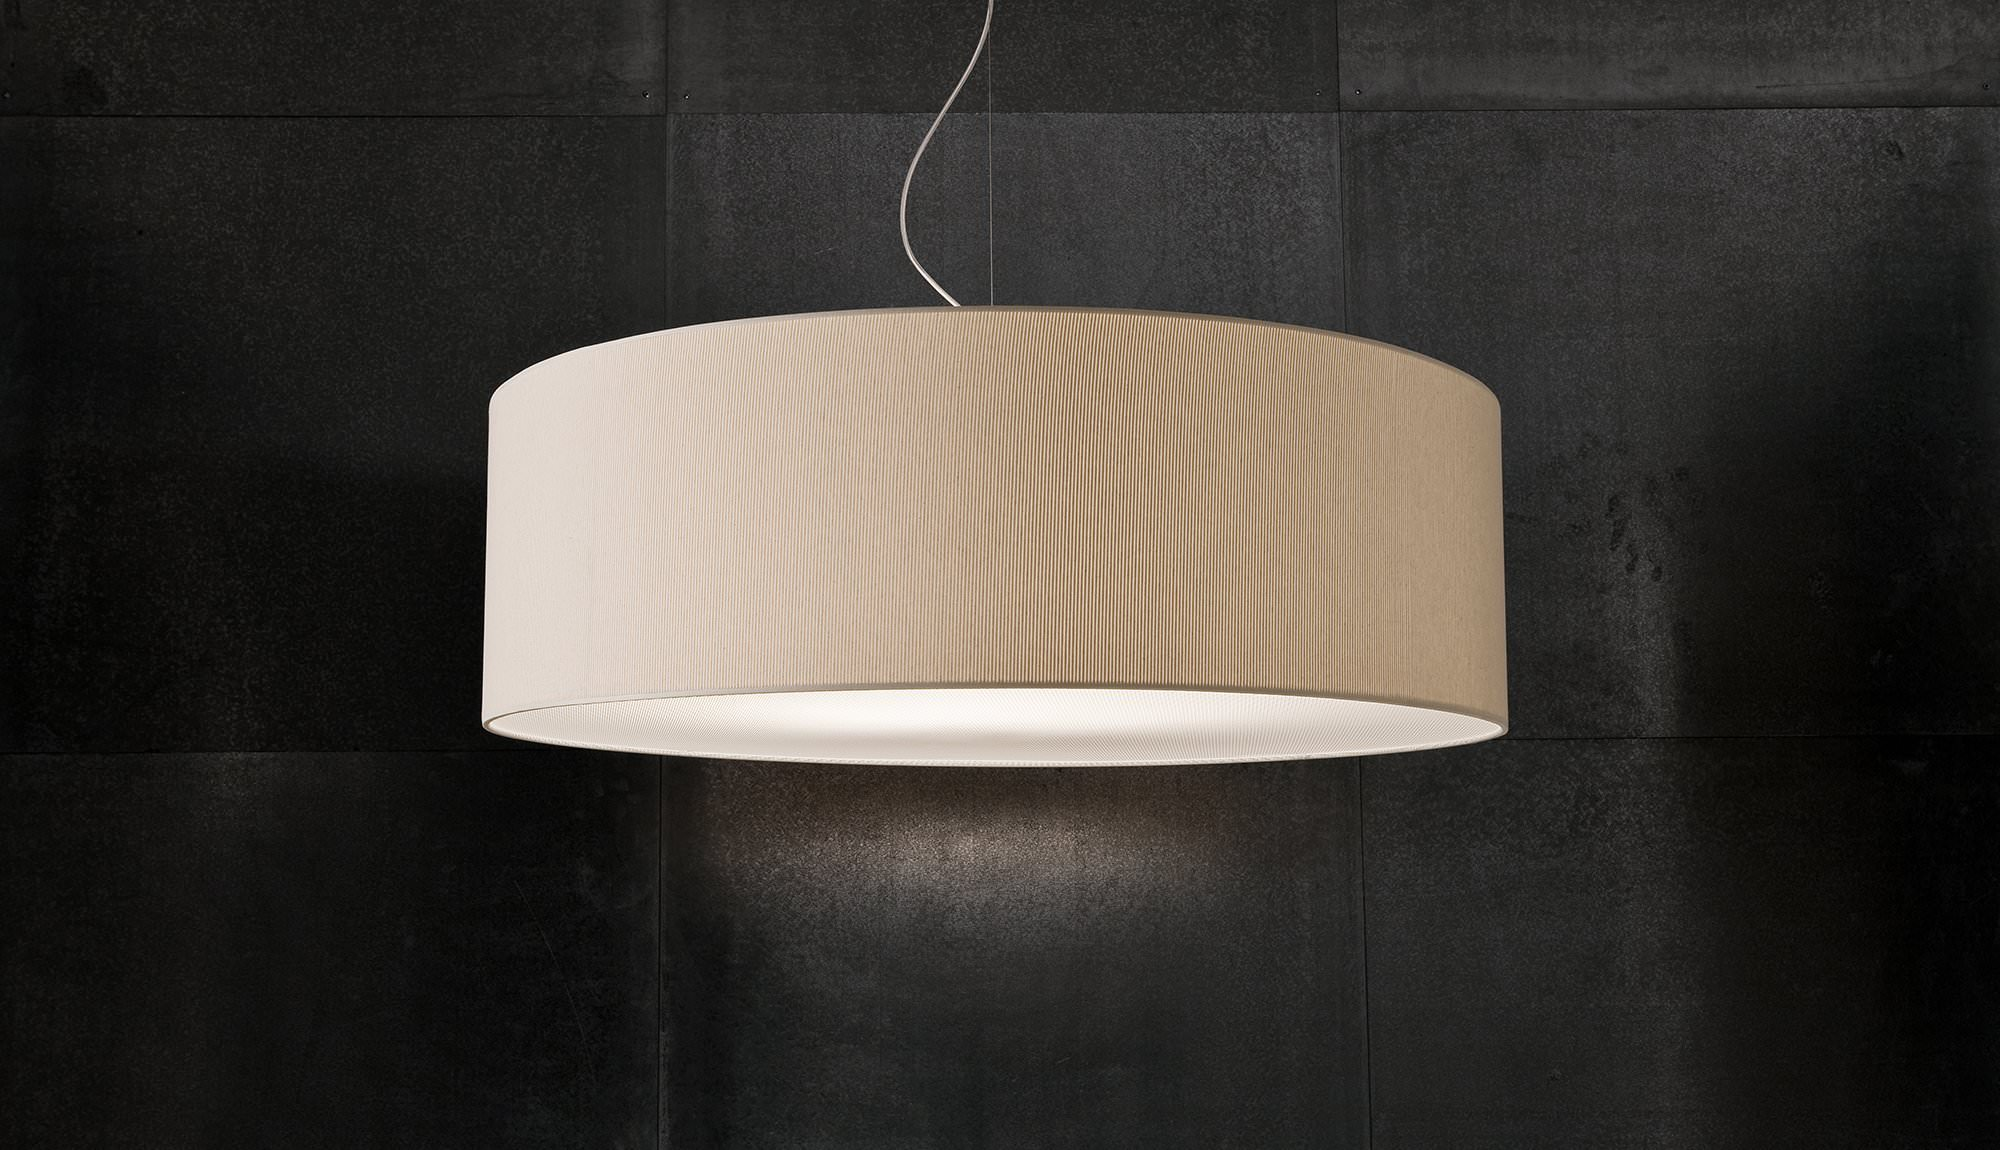 Itama Light 4 Mlampshades 12